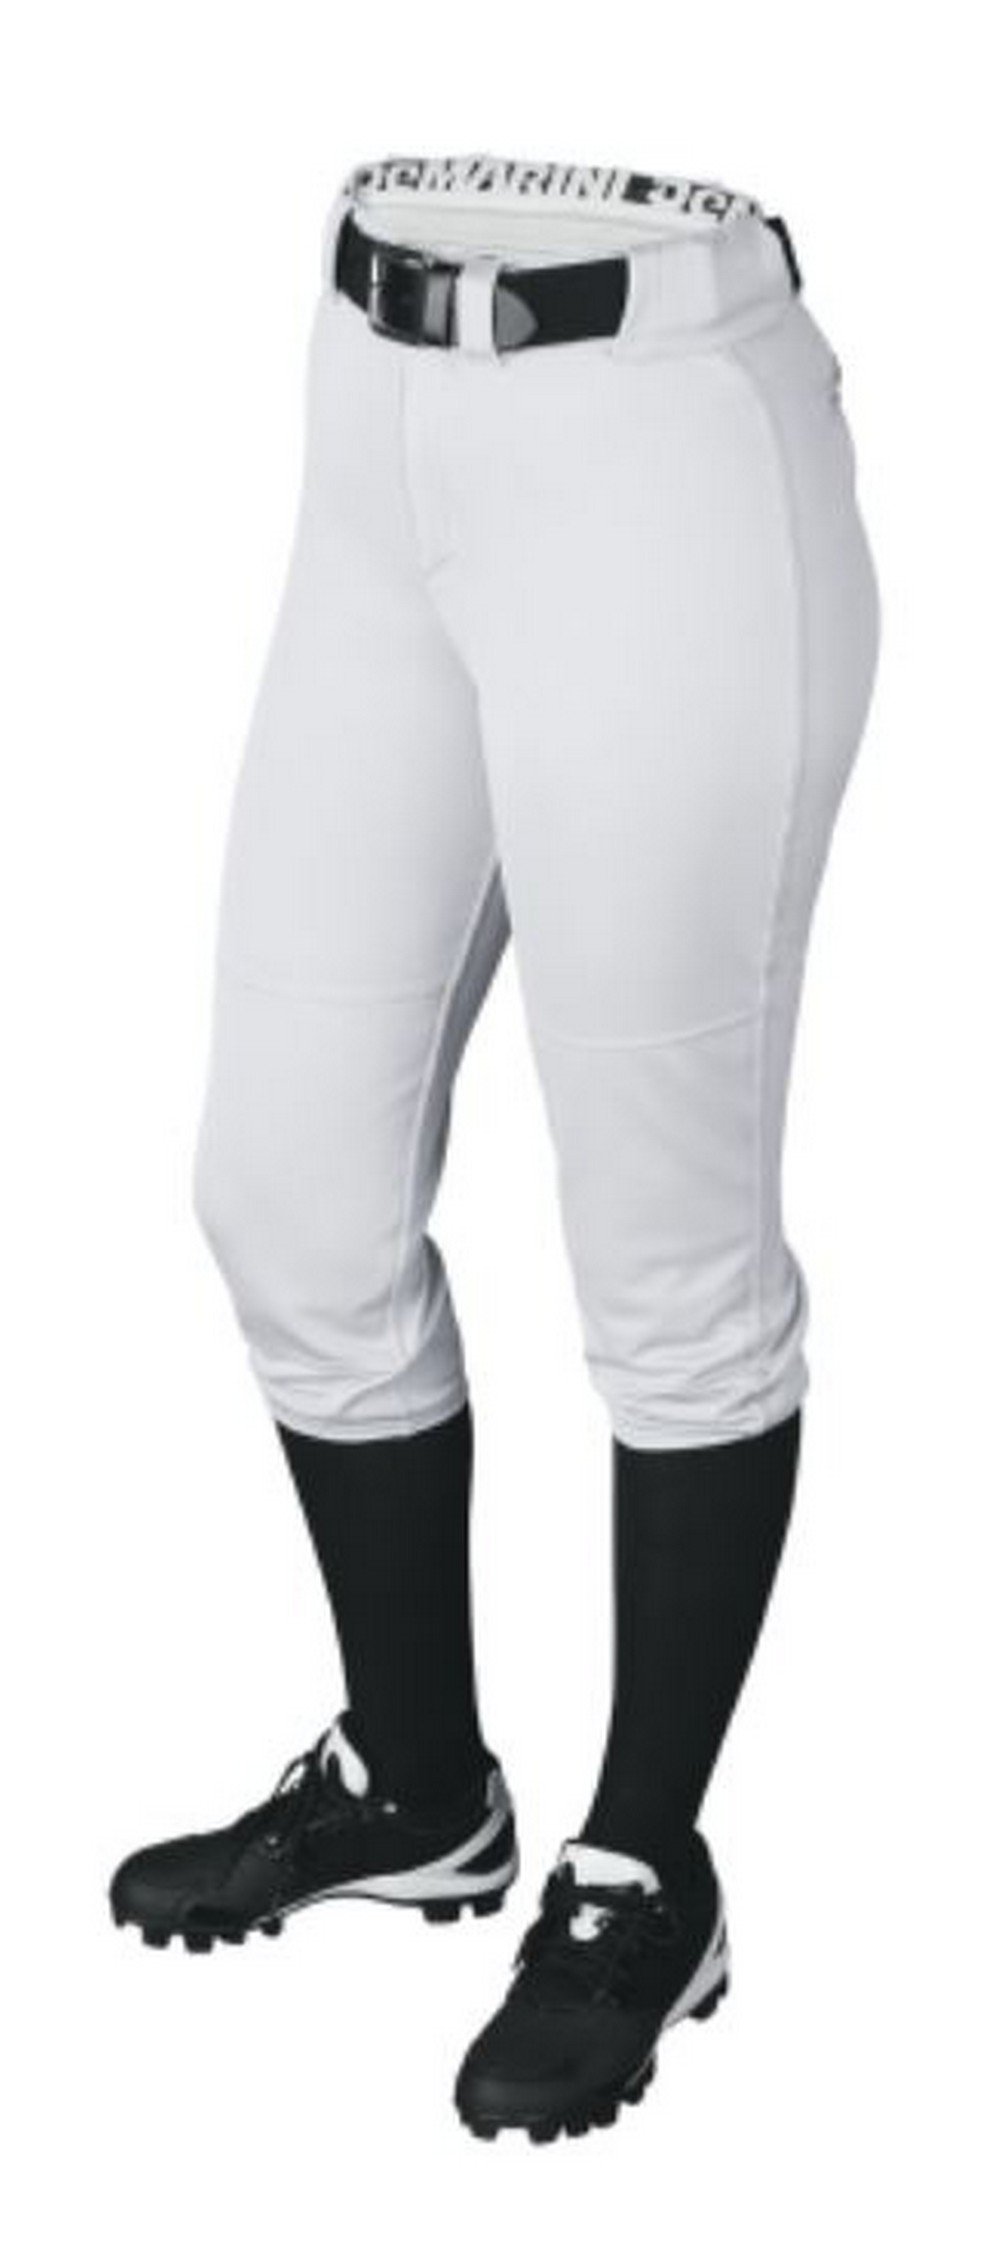 DeMarini Womens Sleek Pull Up Pant, Team White, Small by DeMarini (Image #1)